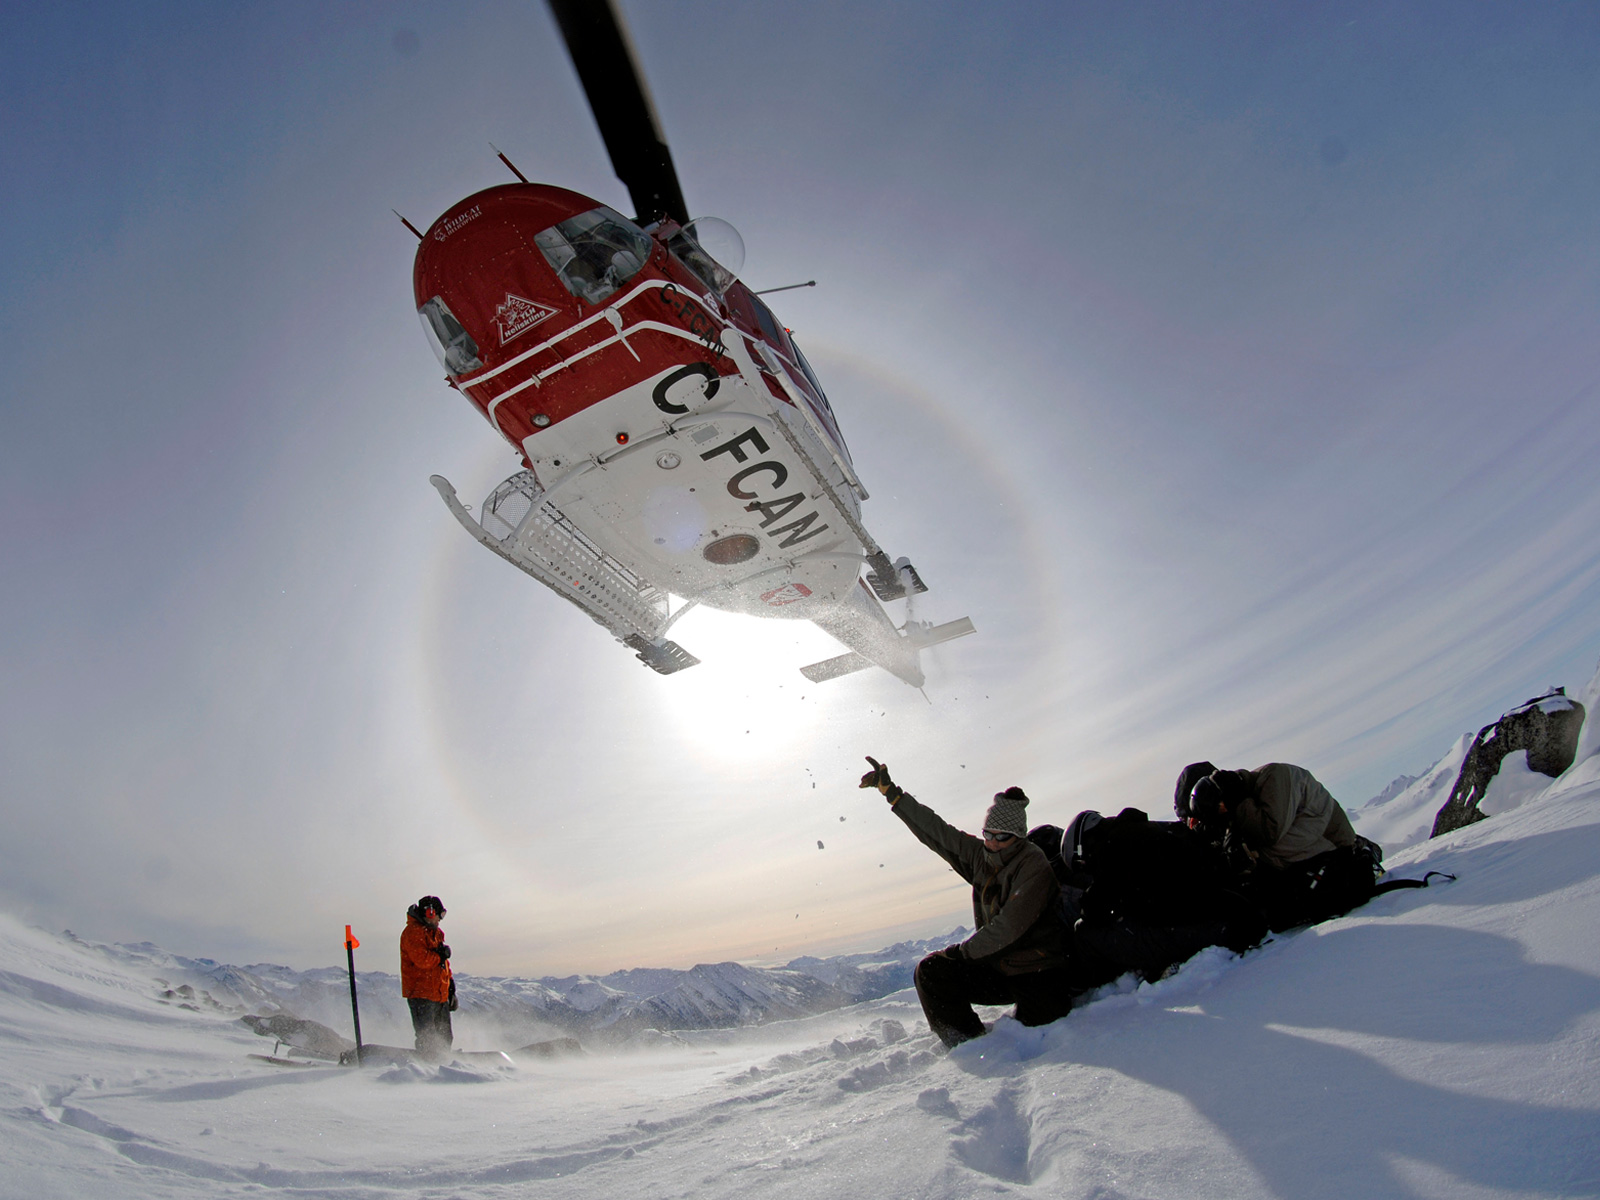 Heli-skiing on one of Canada's most remote mountaintops